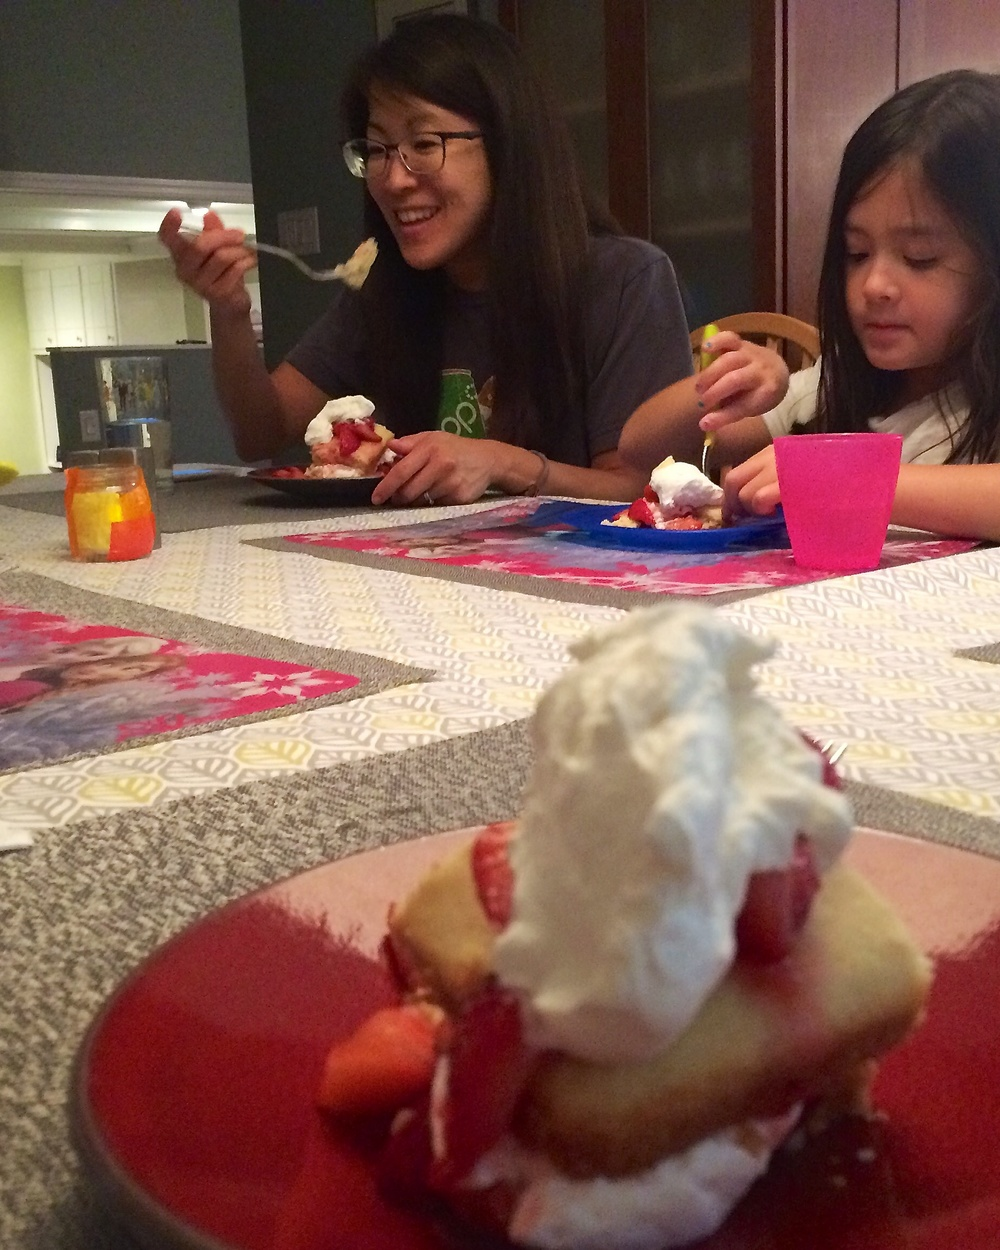 Kara's strawberry shortcake